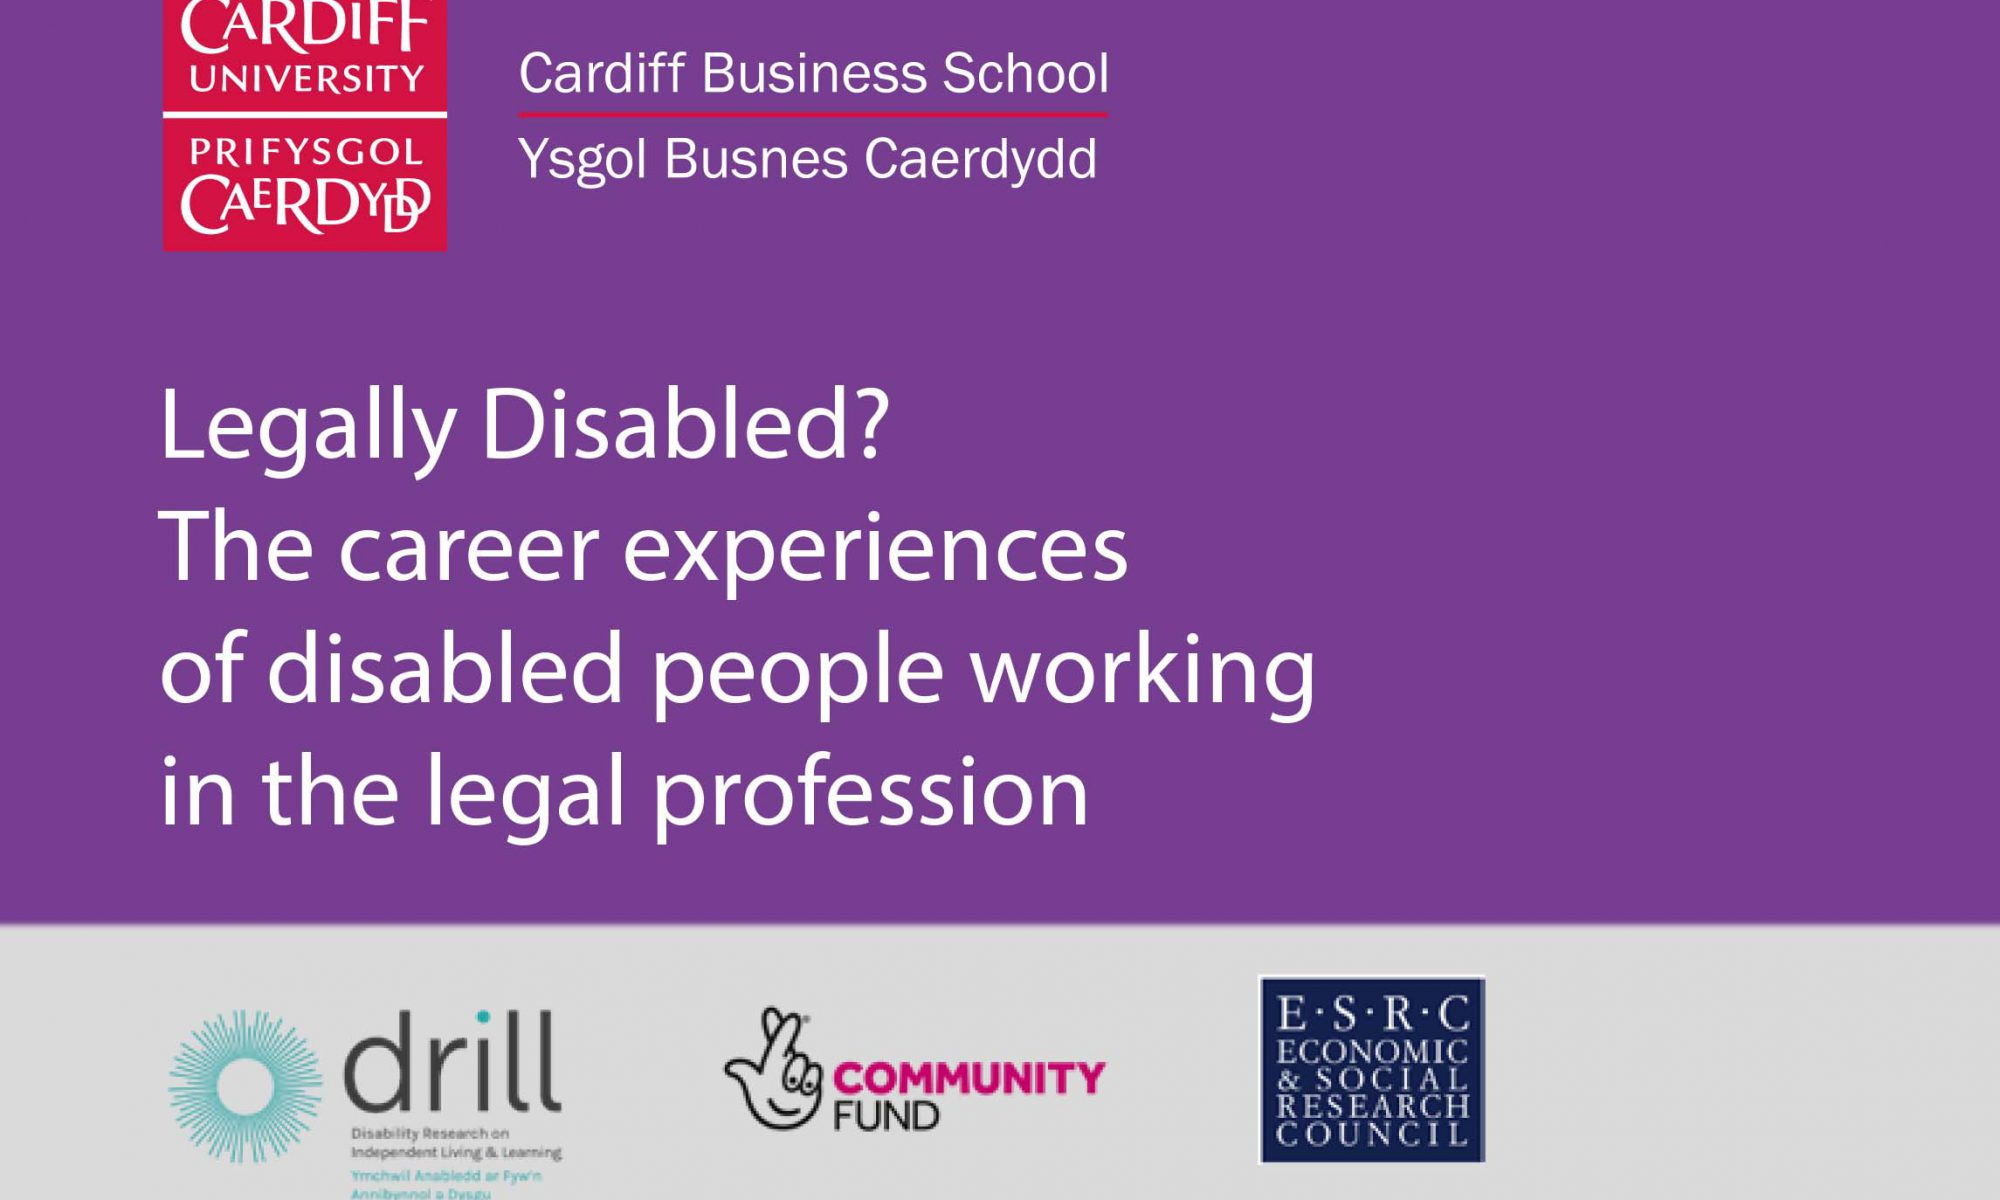 on a purple background the text reads legally disabled? the career experiences of disabled peopel working in the legal profession. with cardiff university and business school logos and DRILL, national lottery and ESRC logos.